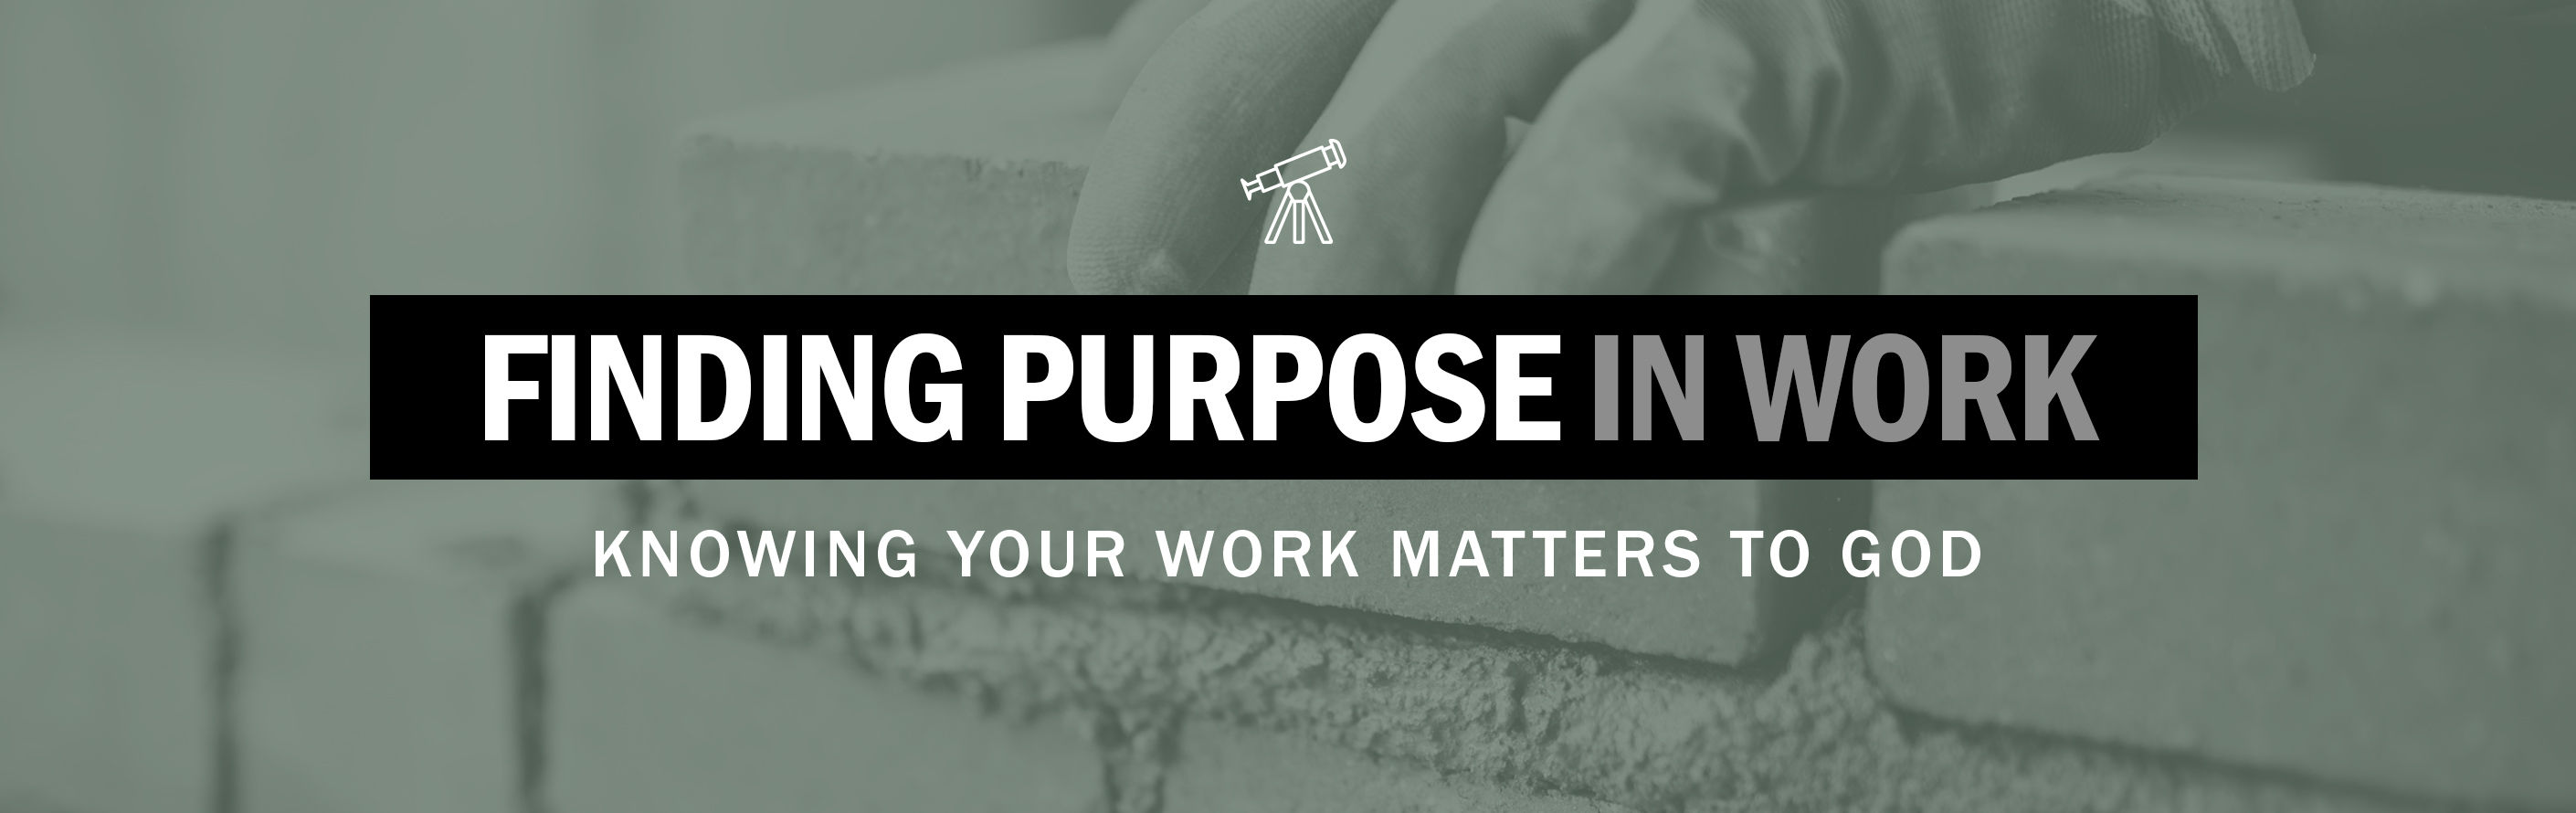 Finding Purpose in Work